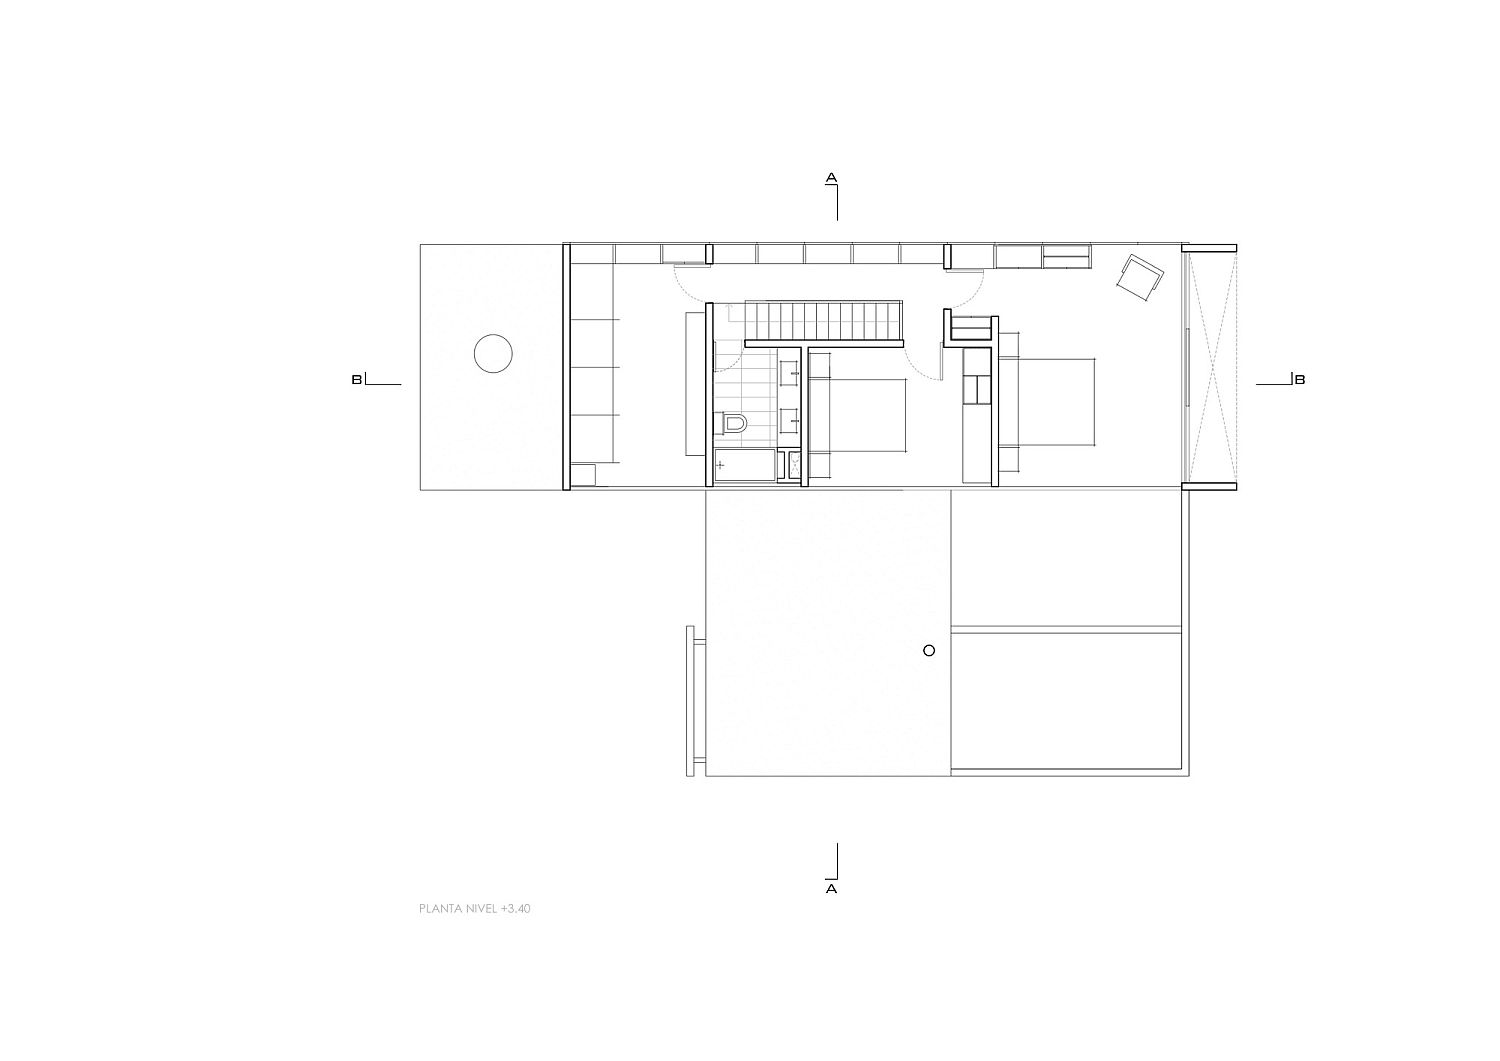 Bedroom level floor plan of cantilevered home in Chile